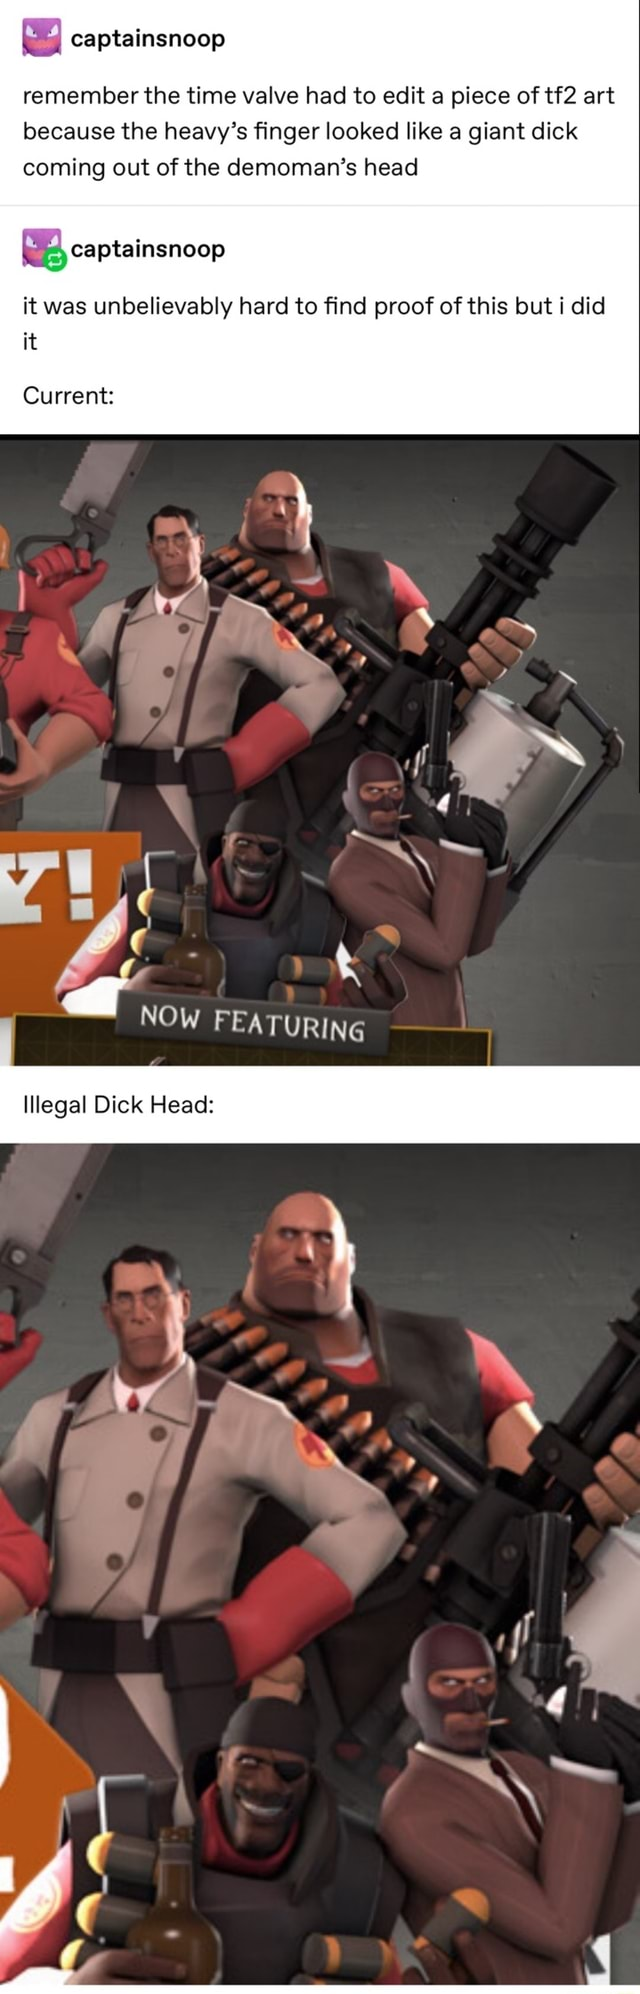 Remember the time valve had to edit a piece of art because the heavy's finger looked like a giant dick coming out of the demoman's head it was unbelievably hard to find proof of this but i did it captainsnoop captainsnoop Current NOW FEATURING Illegal Dick Head meme